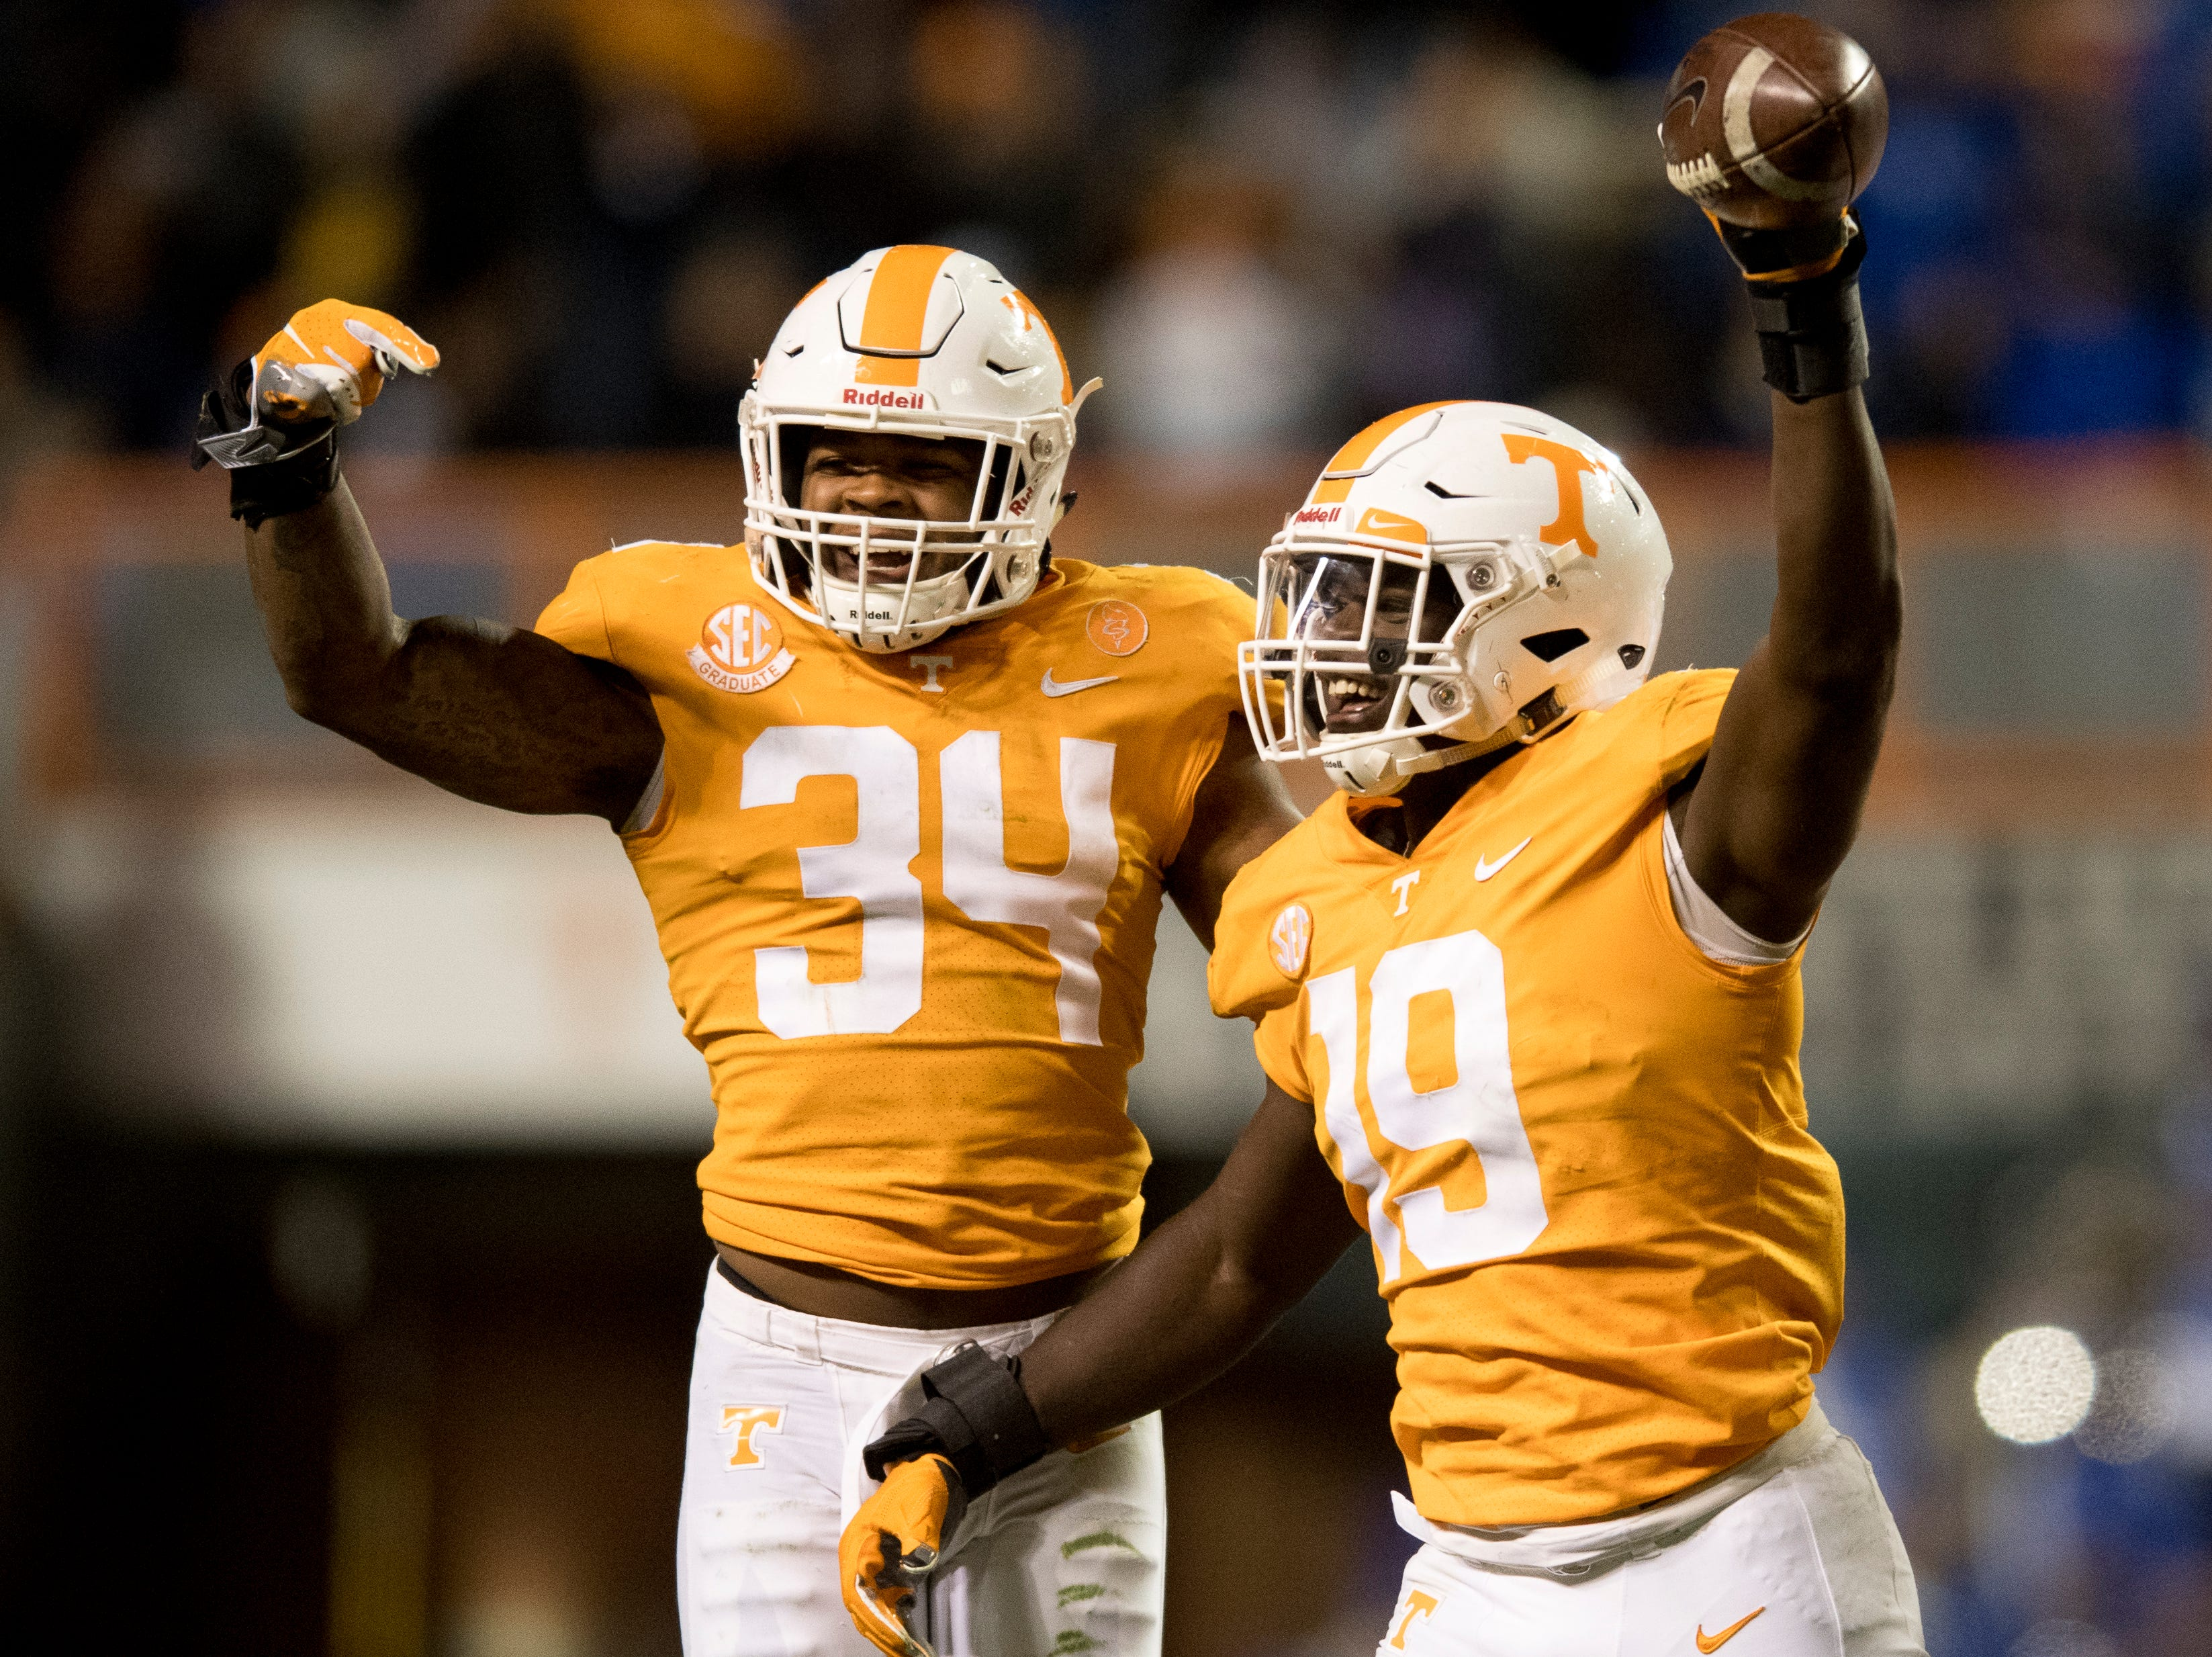 Tennessee linebacker Darrell Taylor (19) celebrates with Tennessee linebacker Darrin Kirkland Jr. (34) after making an interception during a game between Tennessee and Kentucky at Neyland Stadium in Knoxville, Tennessee on Saturday, November 10, 2018.